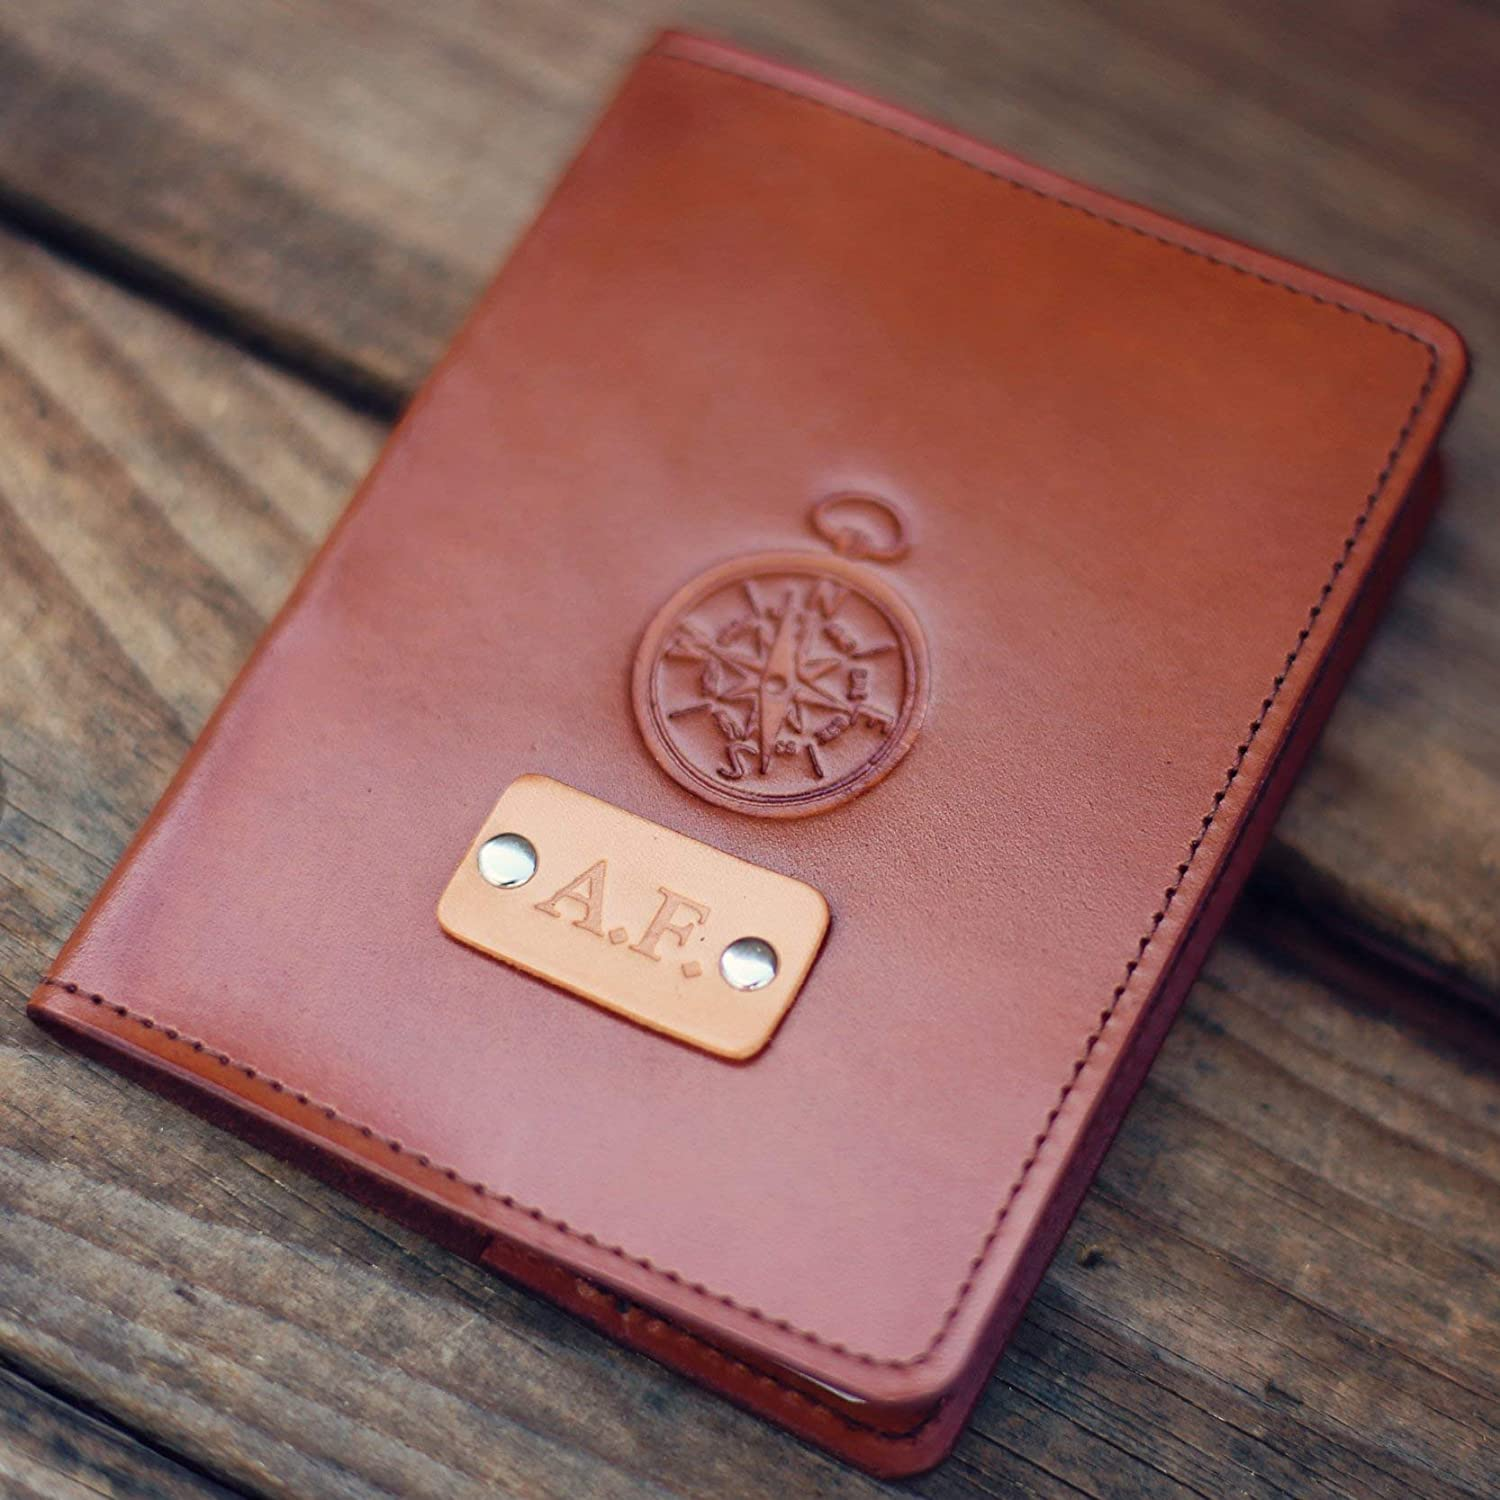 6980d62e3944 Personalized Leather Passport Cover, Real Leather, holder, wanderlust,  travel, Compass Passport Cover, handmade, Custom text, name initials